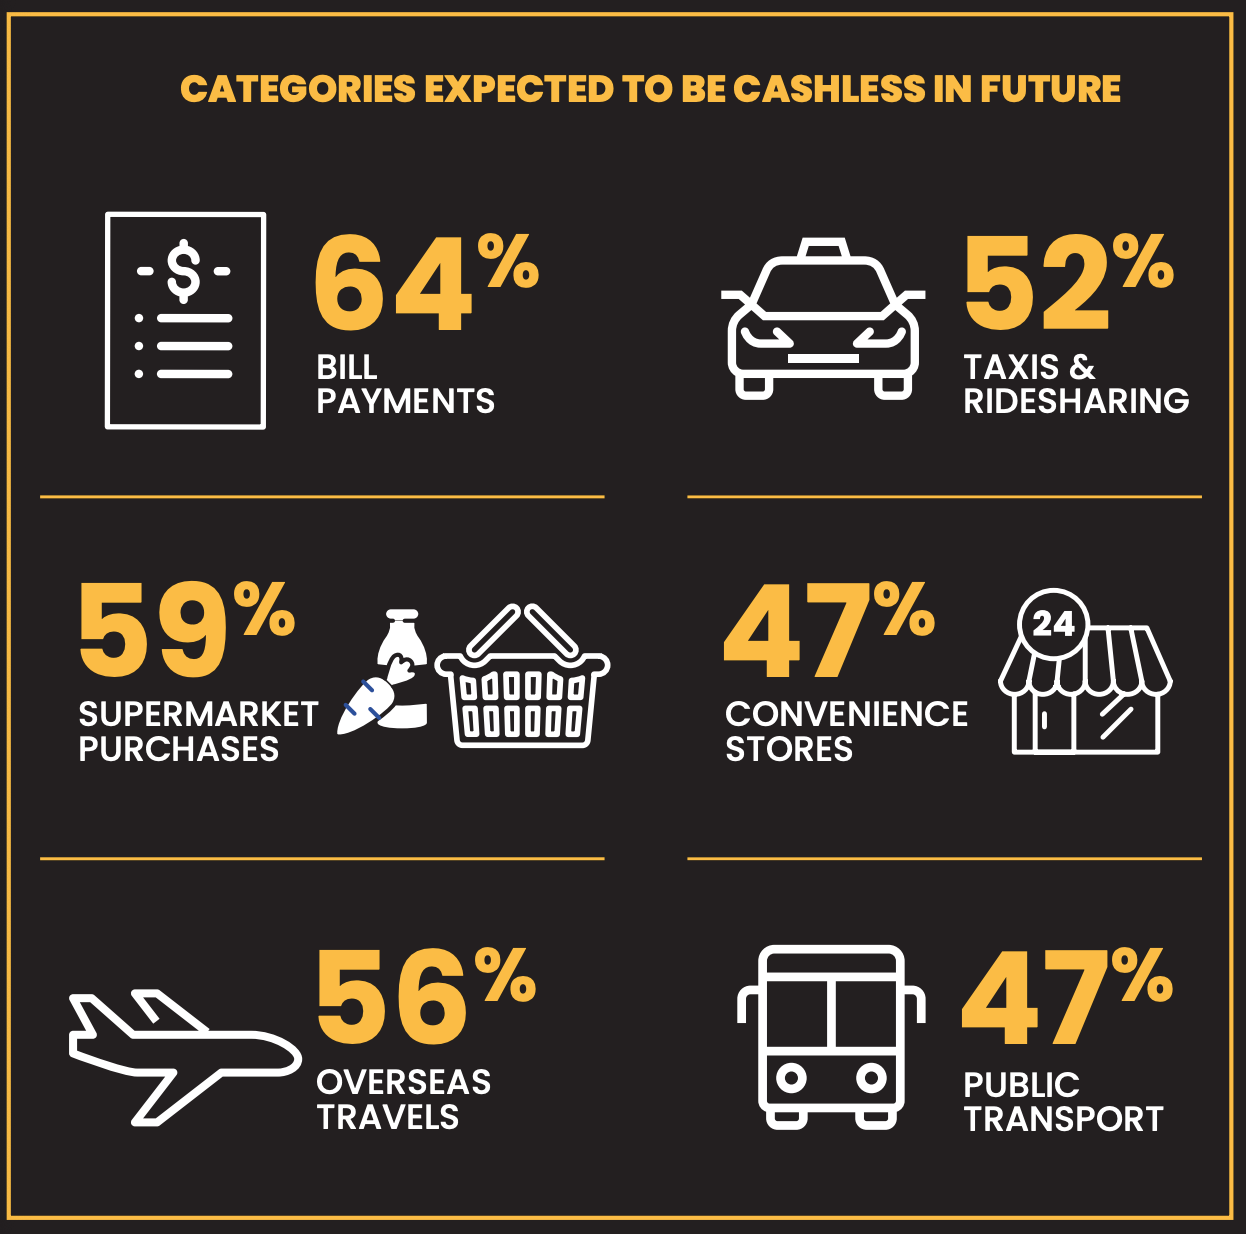 categories expected to be cashless in future